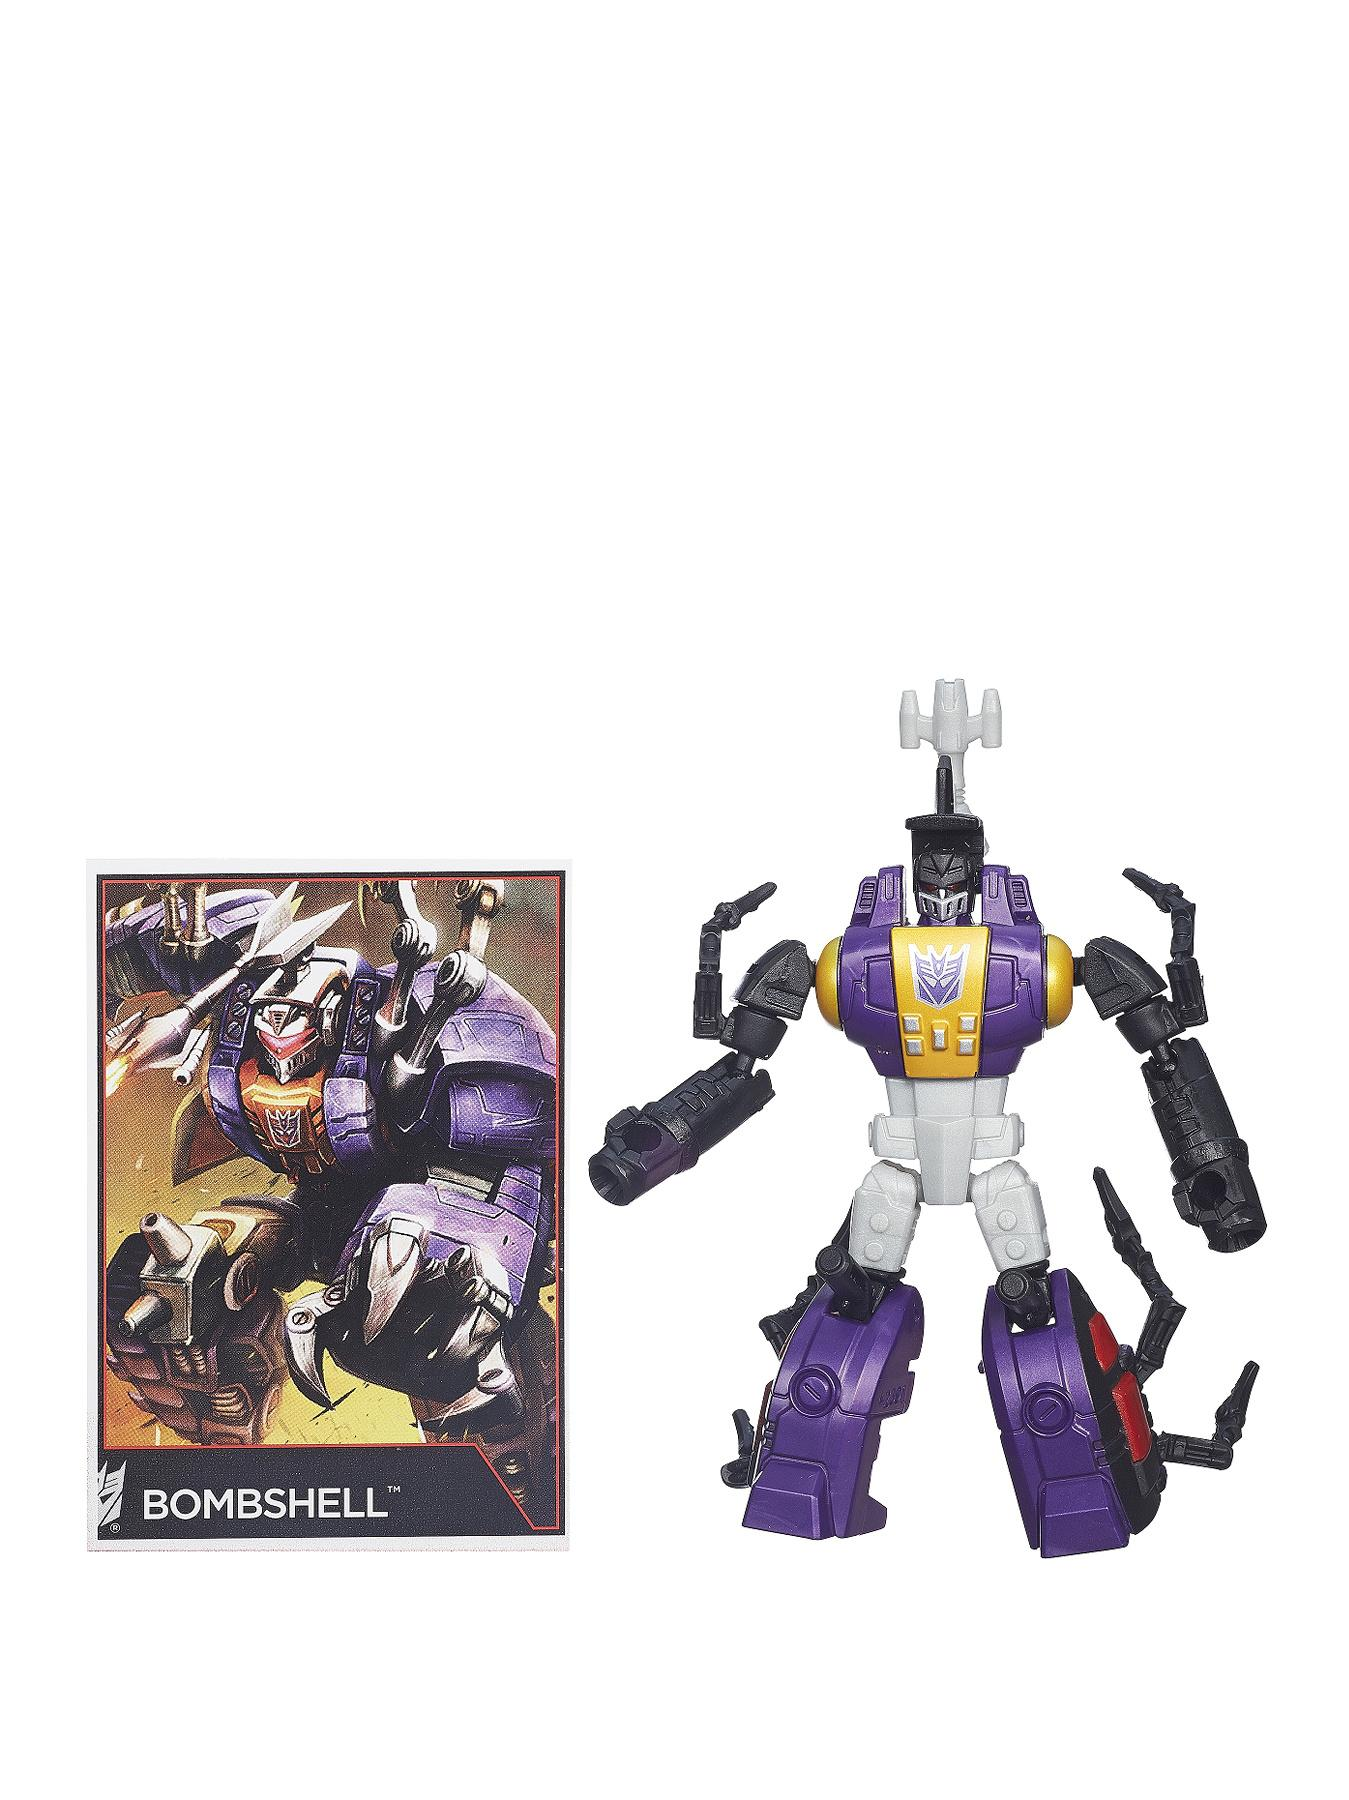 Transformers Generations Legends Class Insecticon Figure - Bombshell